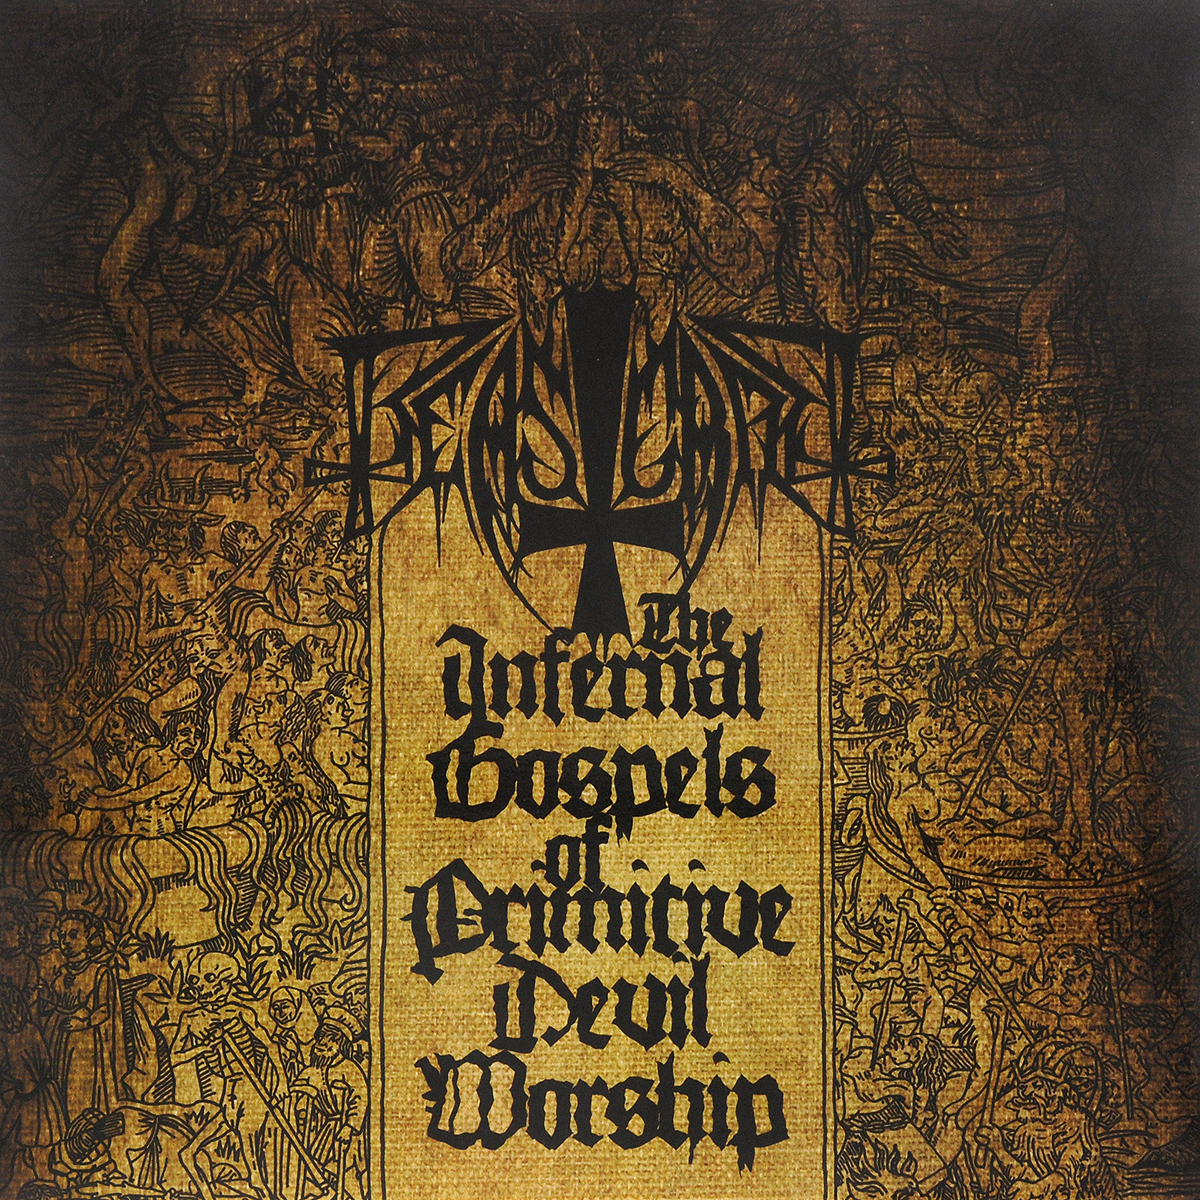 Beastcraft Beastcraft. The Infernal Gospels Of Primitive Devil Worship (LP) hape деревянная музыкальная игрушка бубен